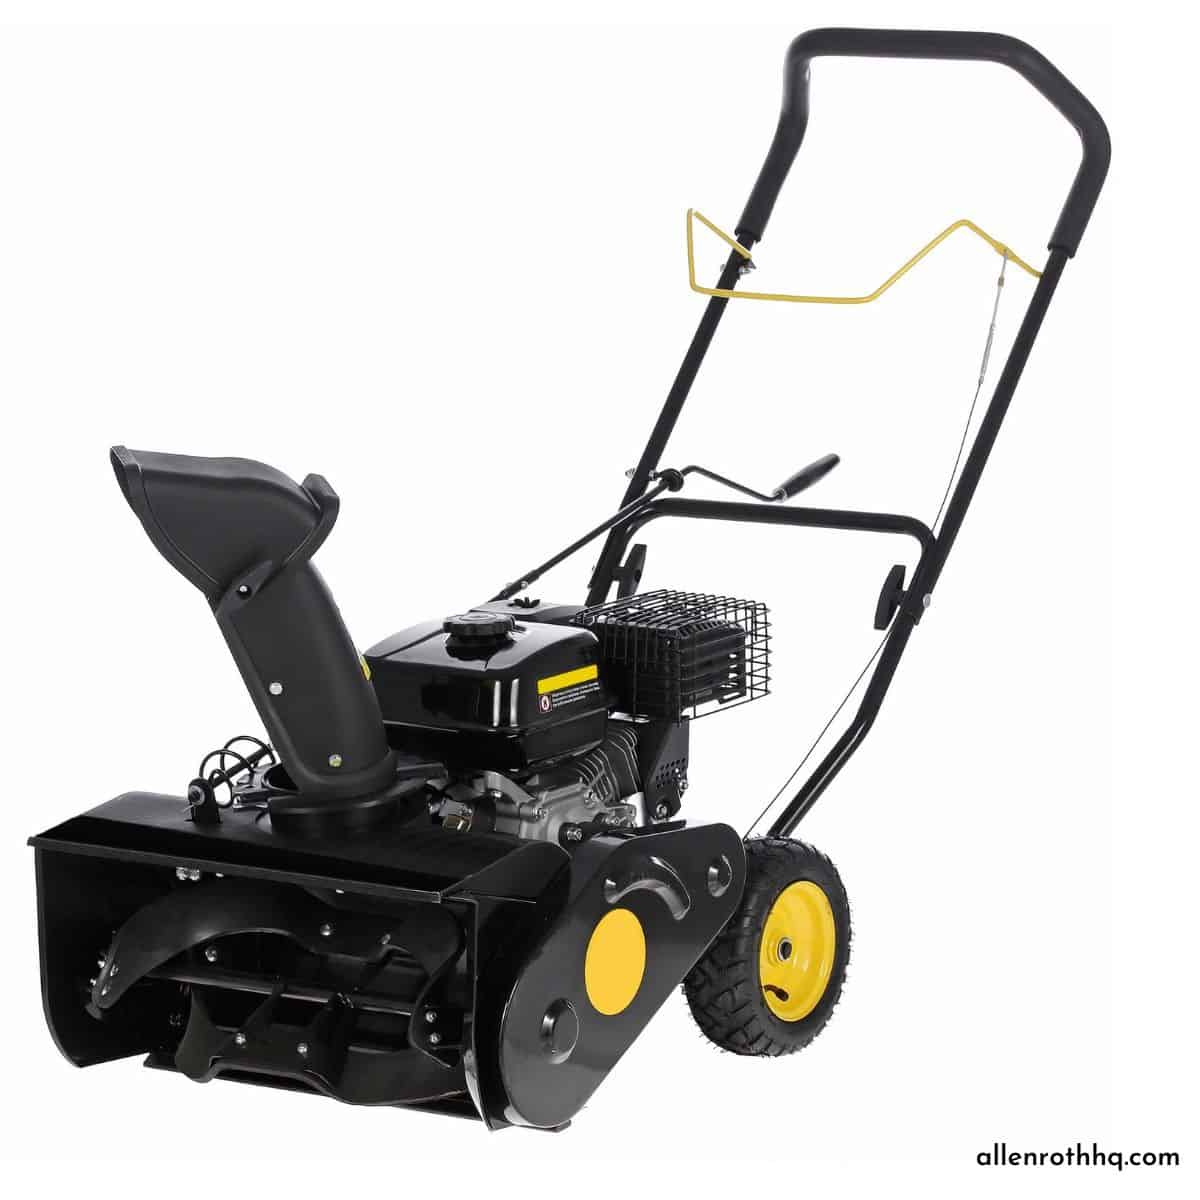 When do snow blowers go on sale